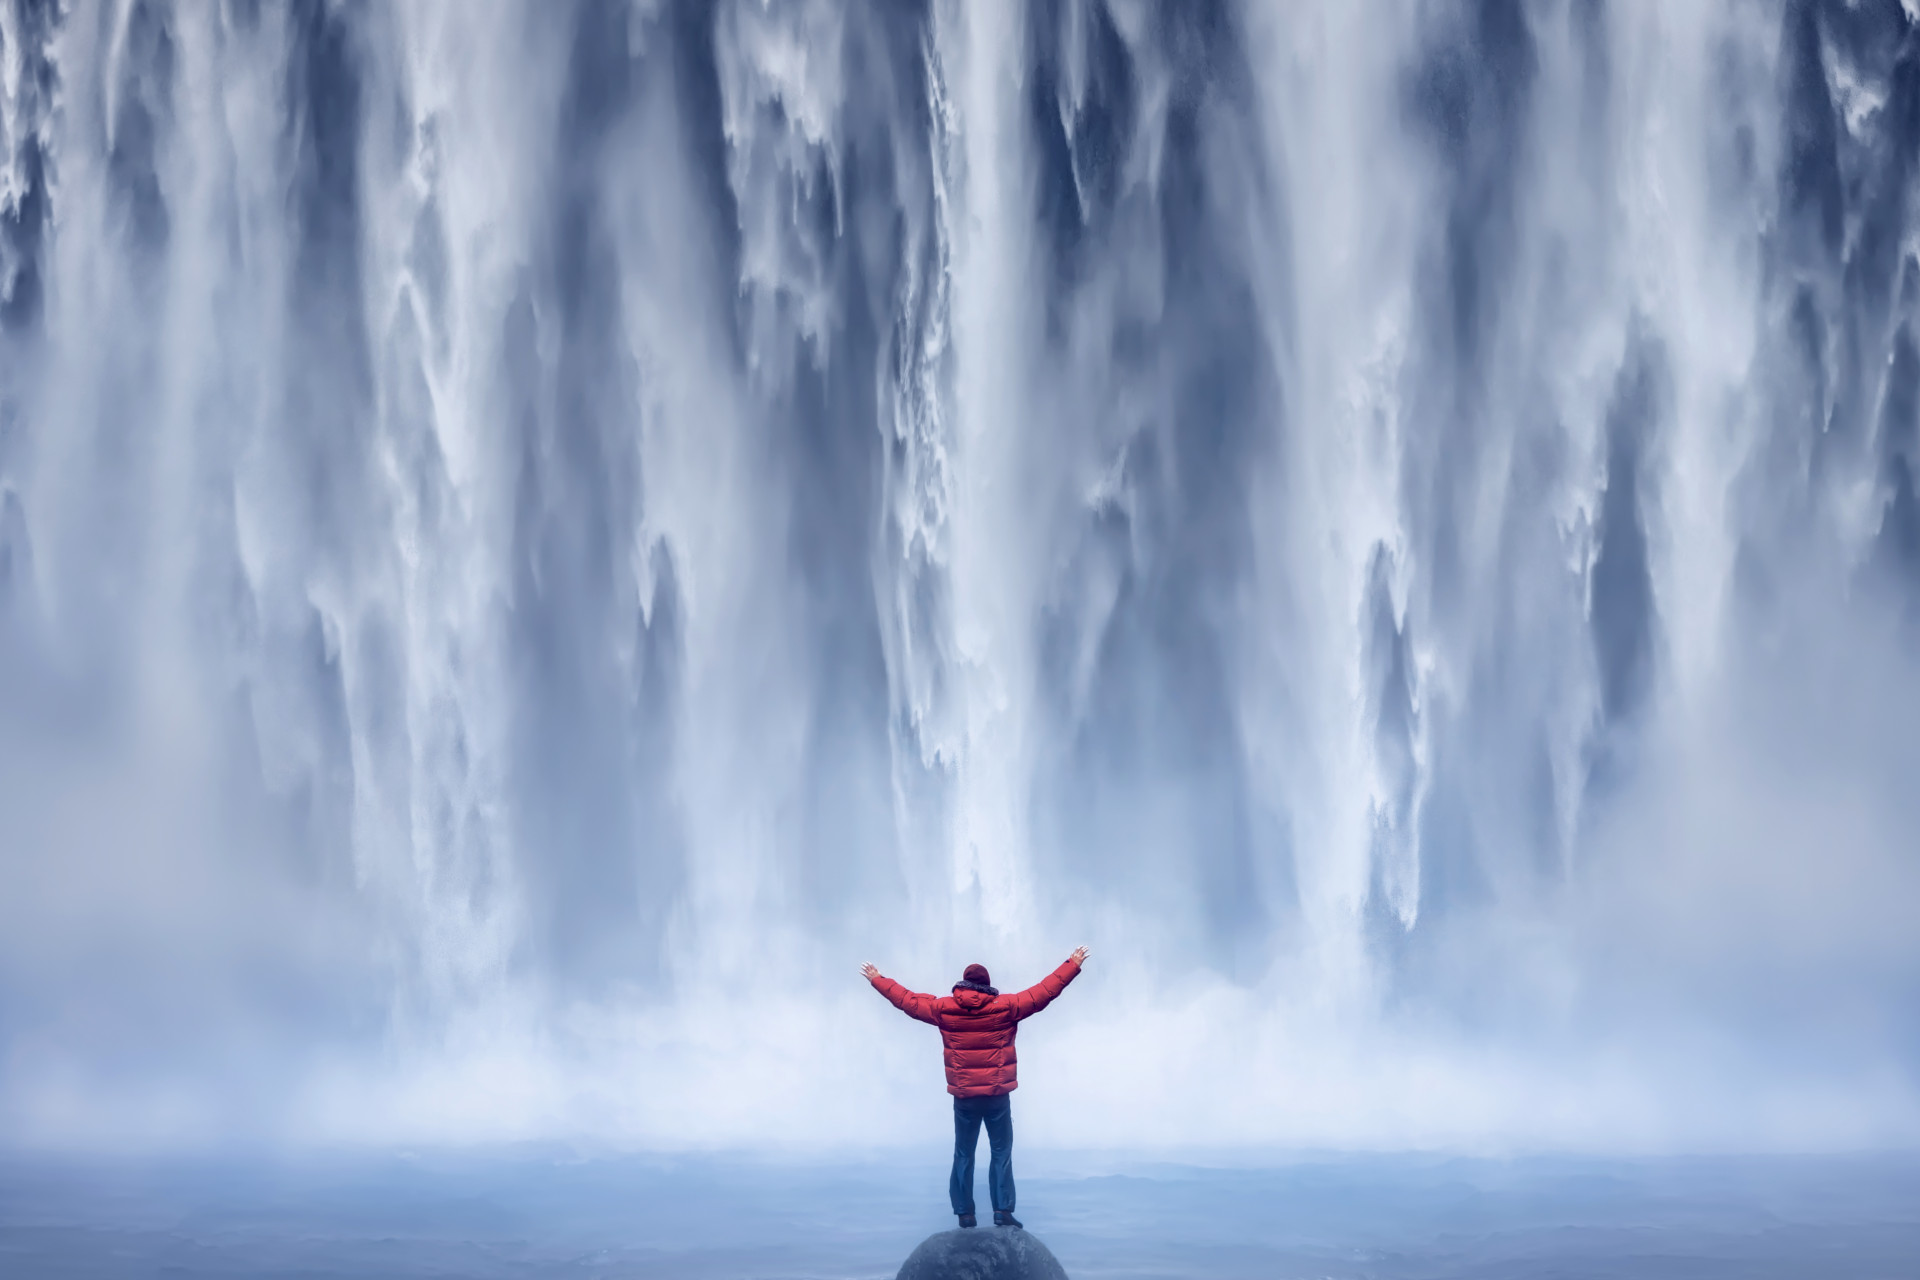 Man with Red Jacket in front of Waterfall